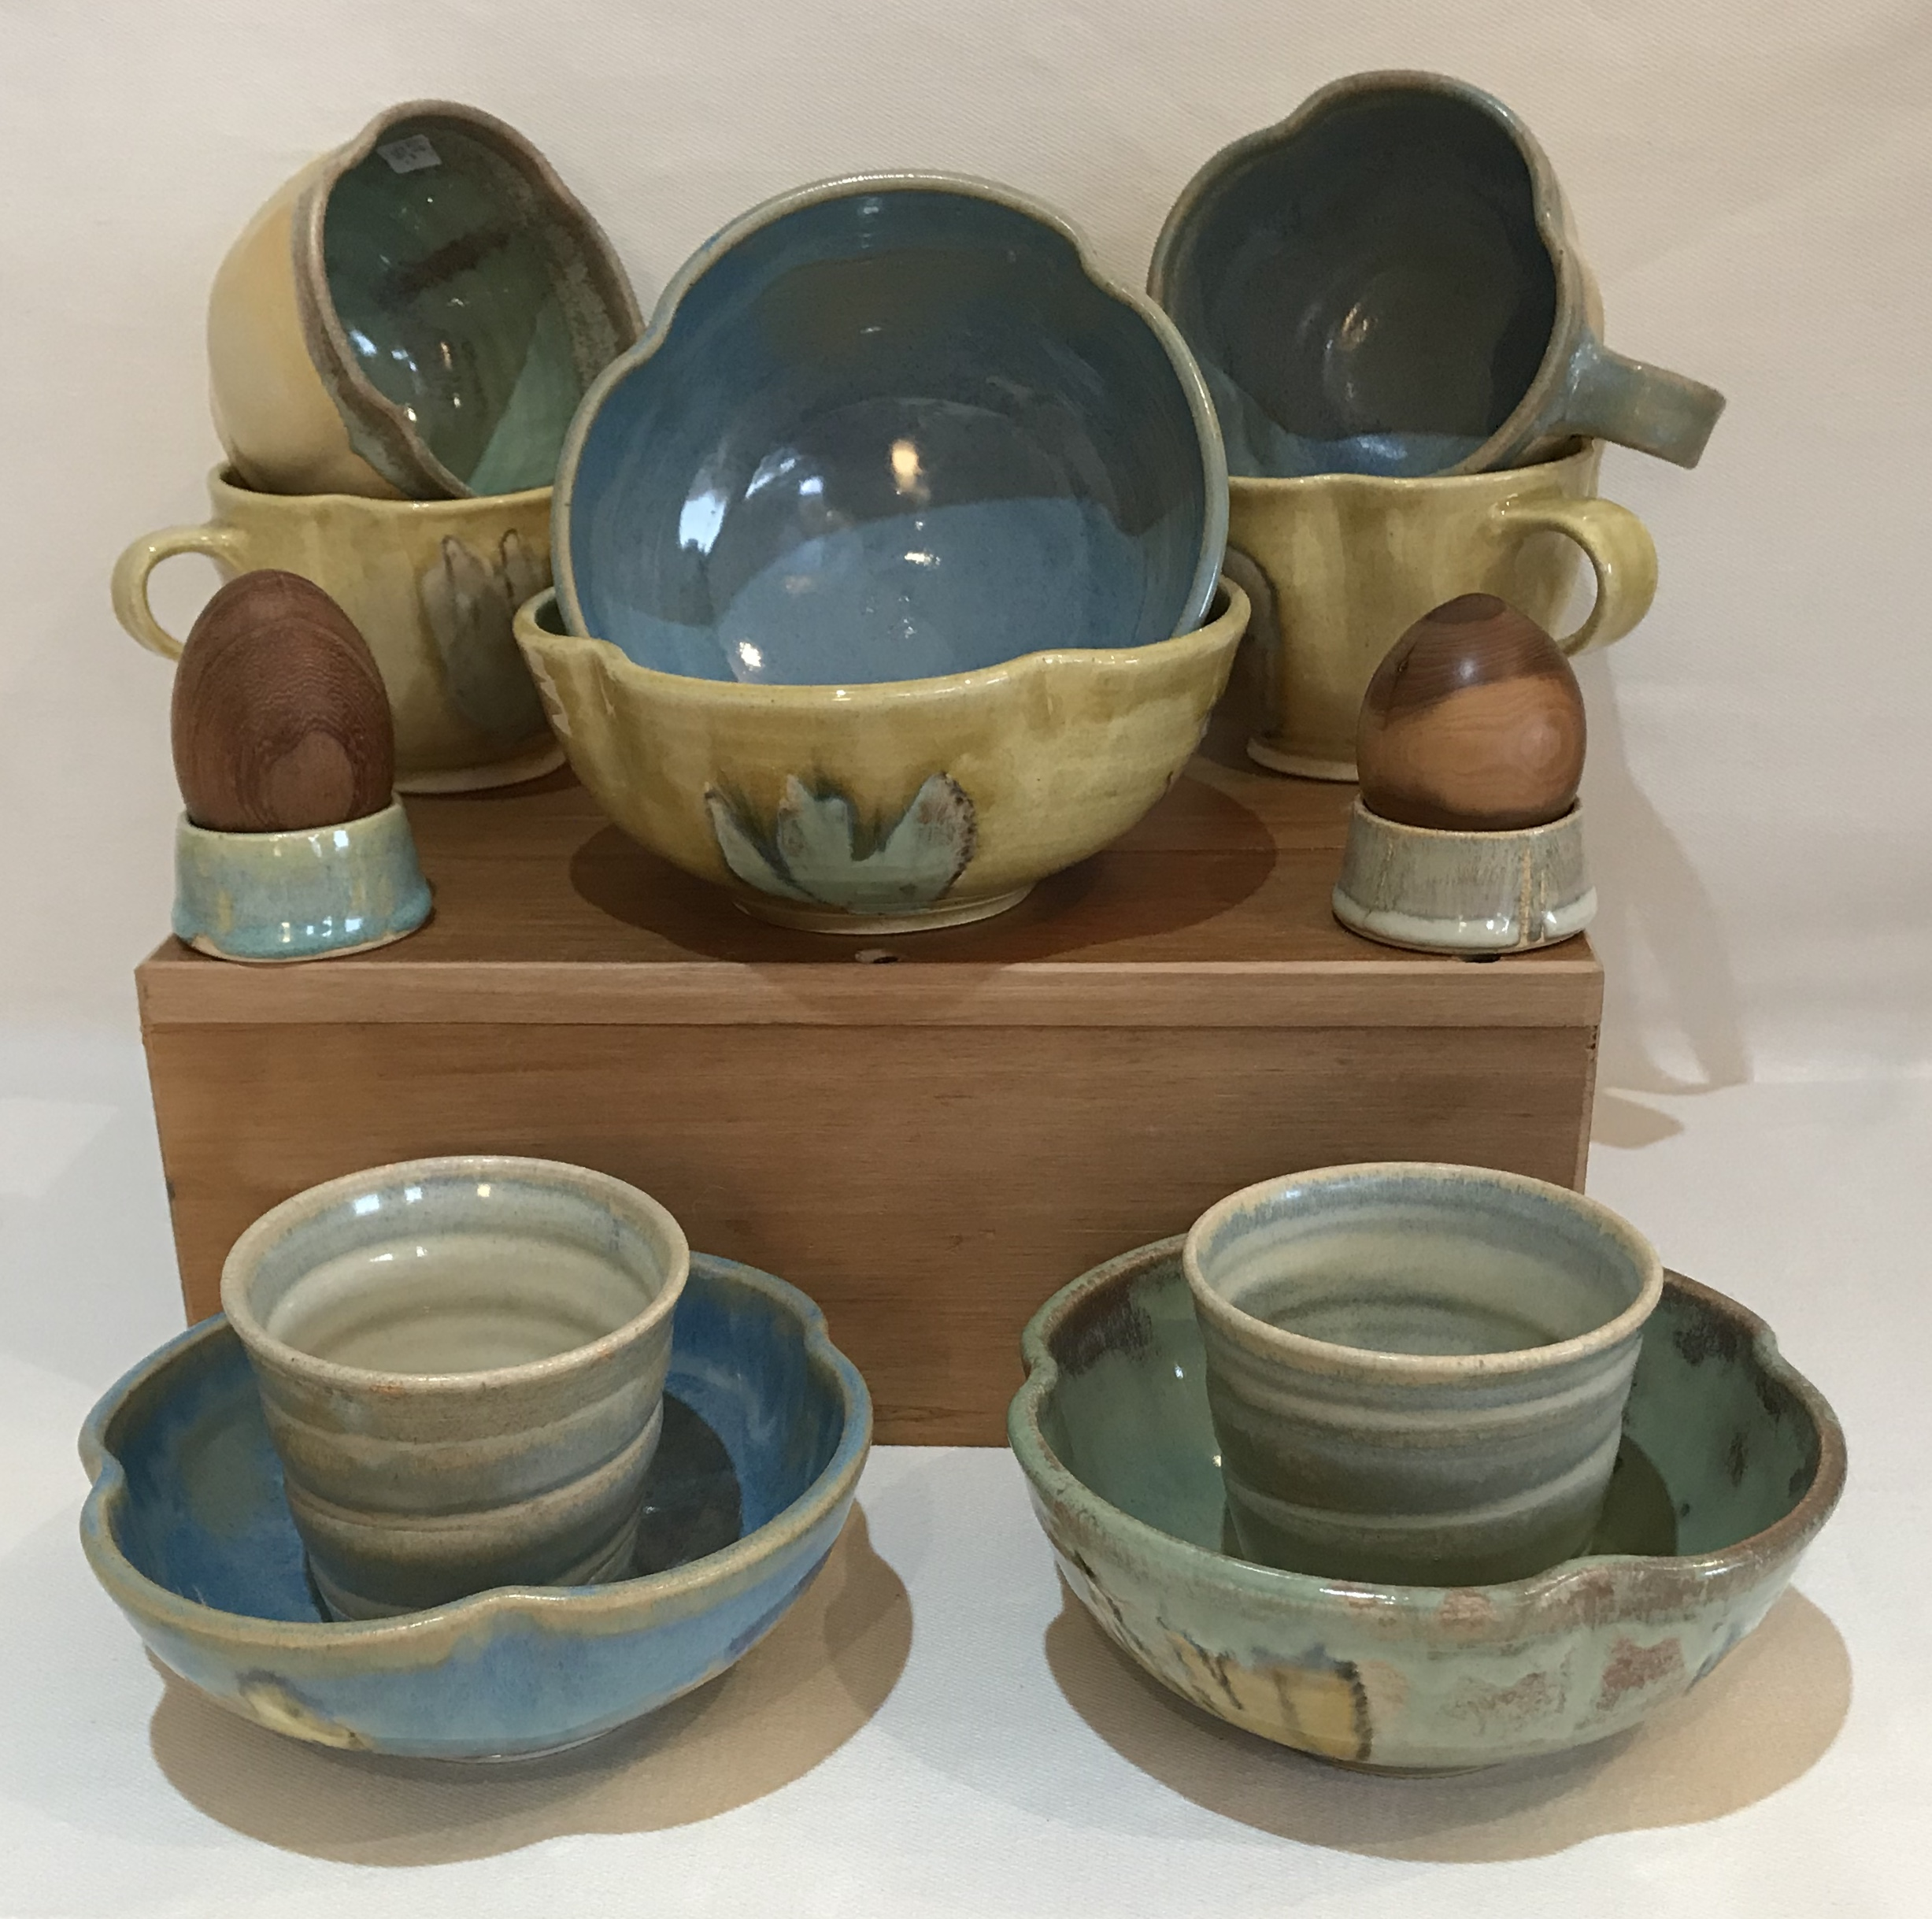 cups n bowls hand made